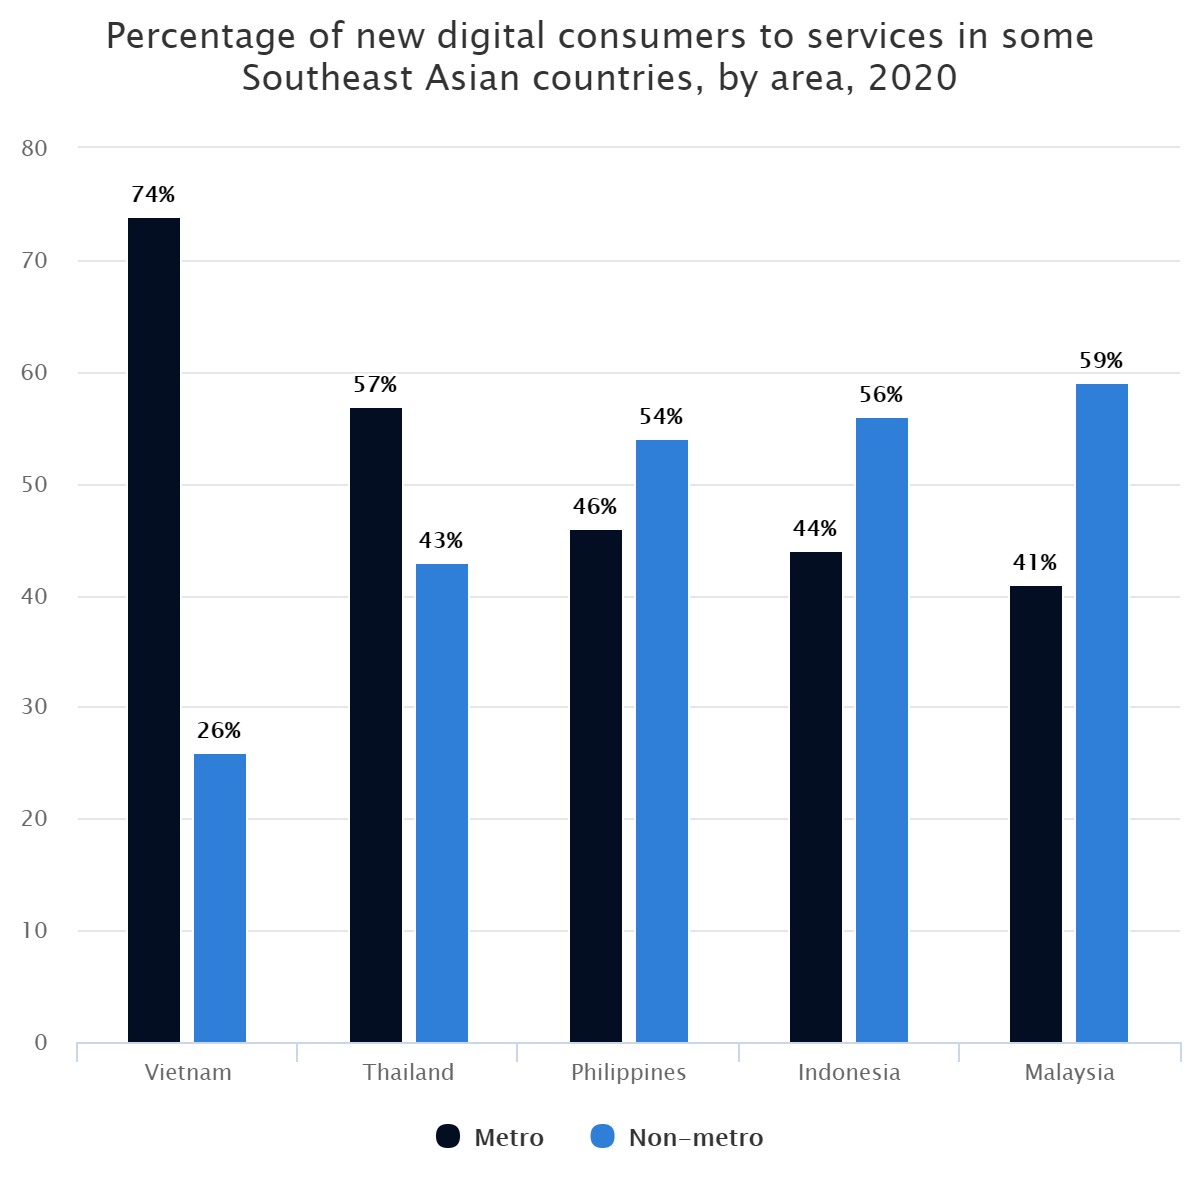 Percentage of new digital consumers to services in some Southeast Asian countries, by area, 2020